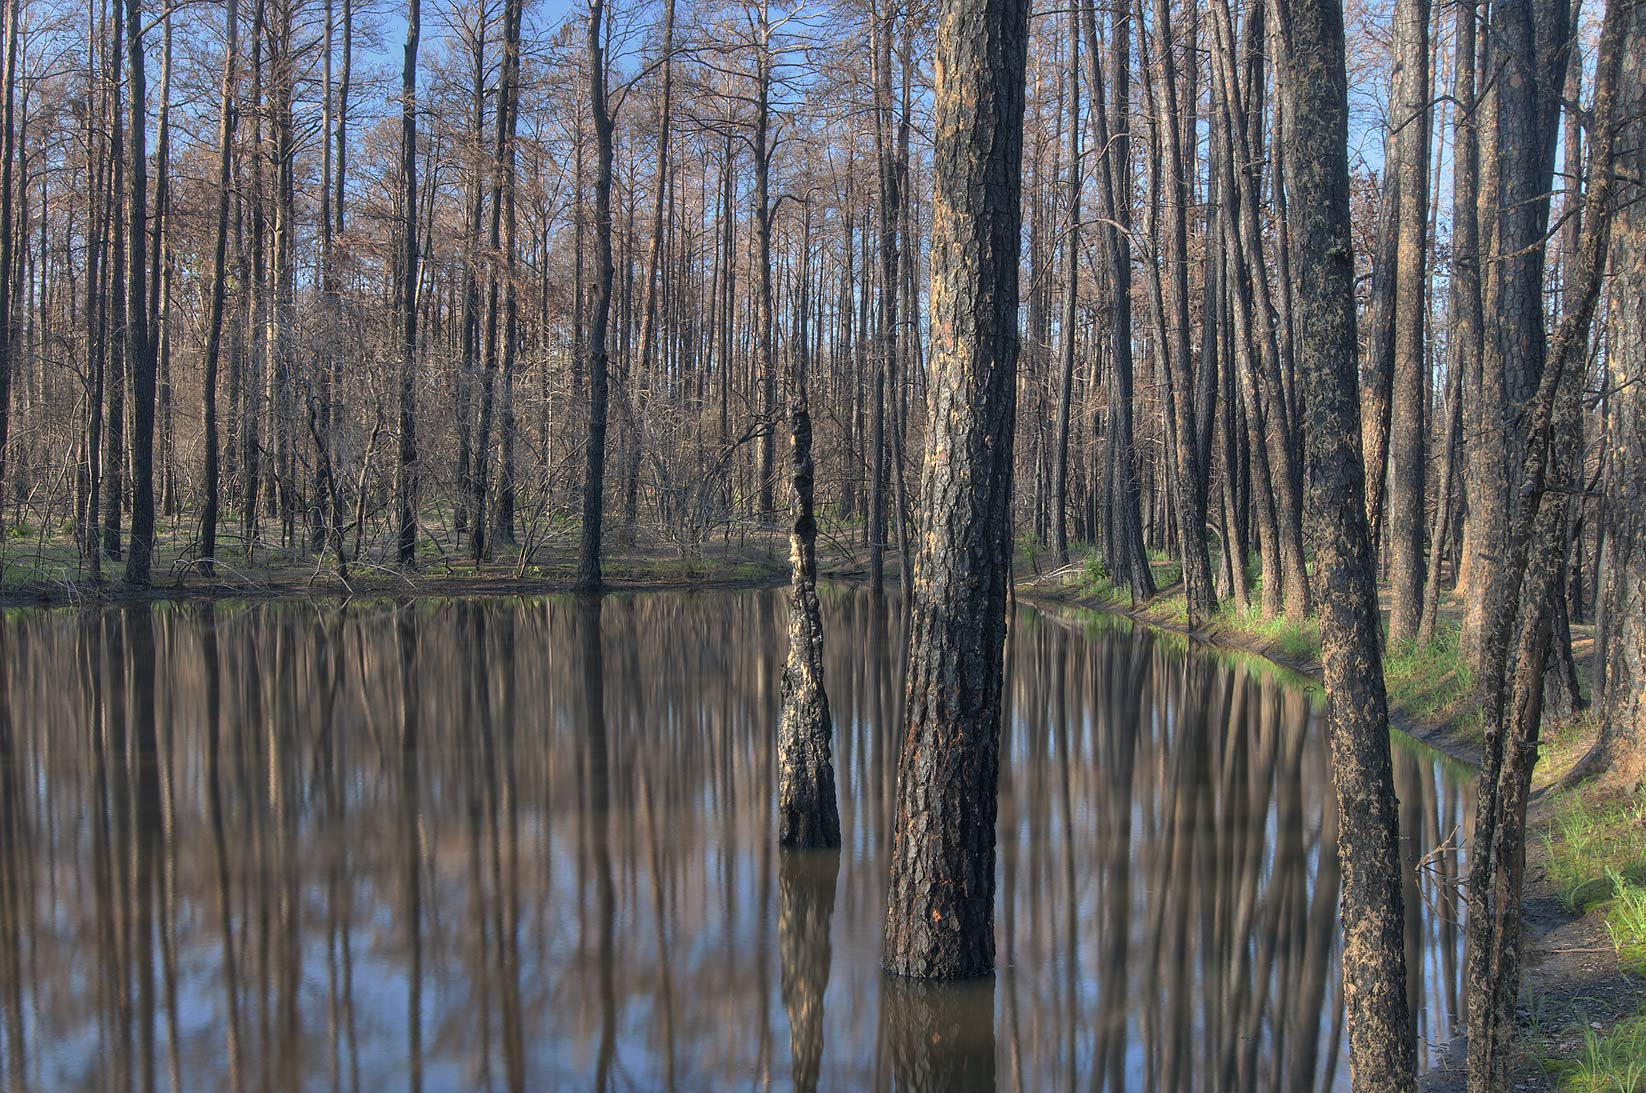 Burned pines in a pond near Roosevelt's Cutoff Trail in Bastrop State Park. Bastrop, Texas